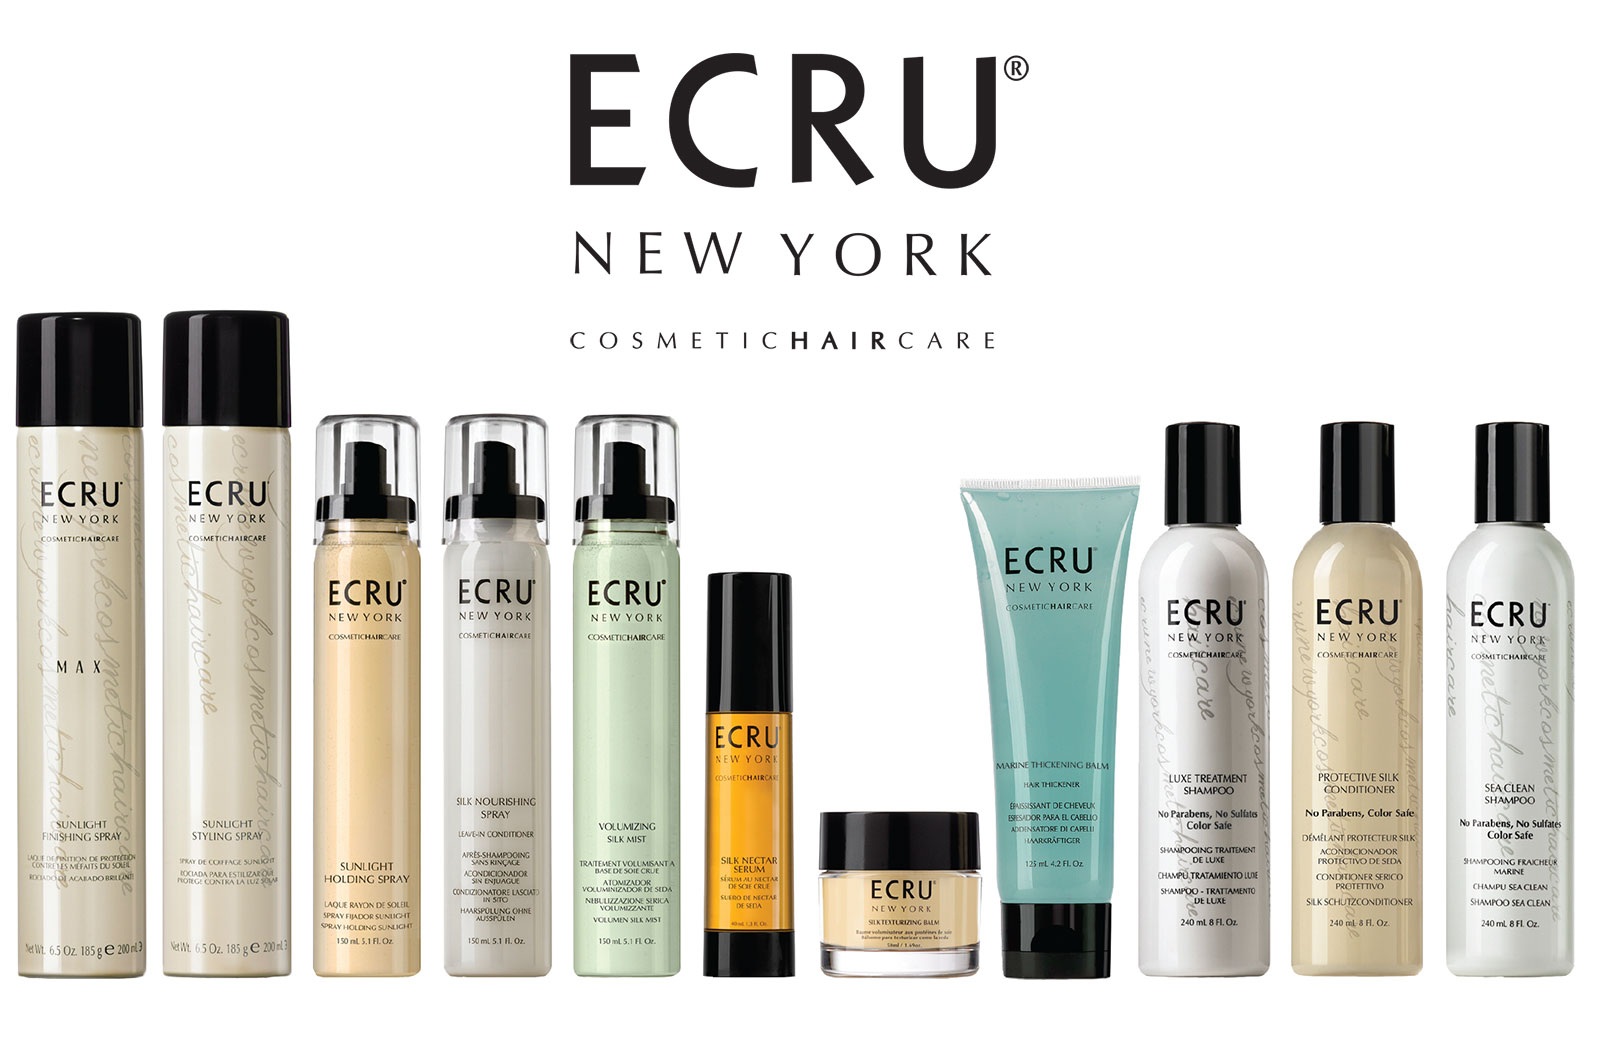 ECRU Products